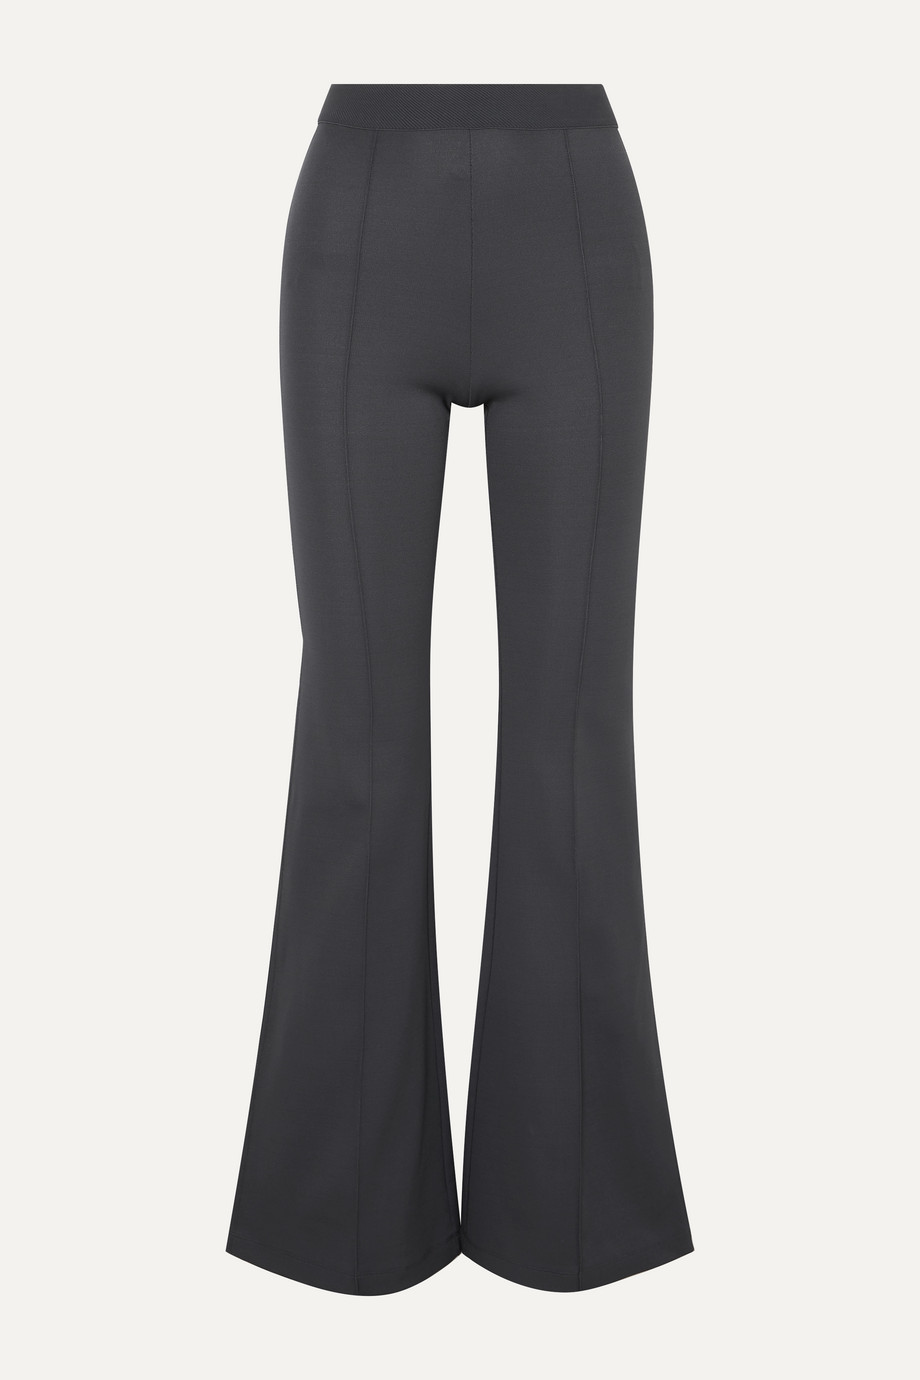 Exact Product: Selena Gomez Rust Straight Fit Trousers Street Style Autumn Winter 2020, Brand: Gauge81, Available on: net-a-porter.com, Price: $243